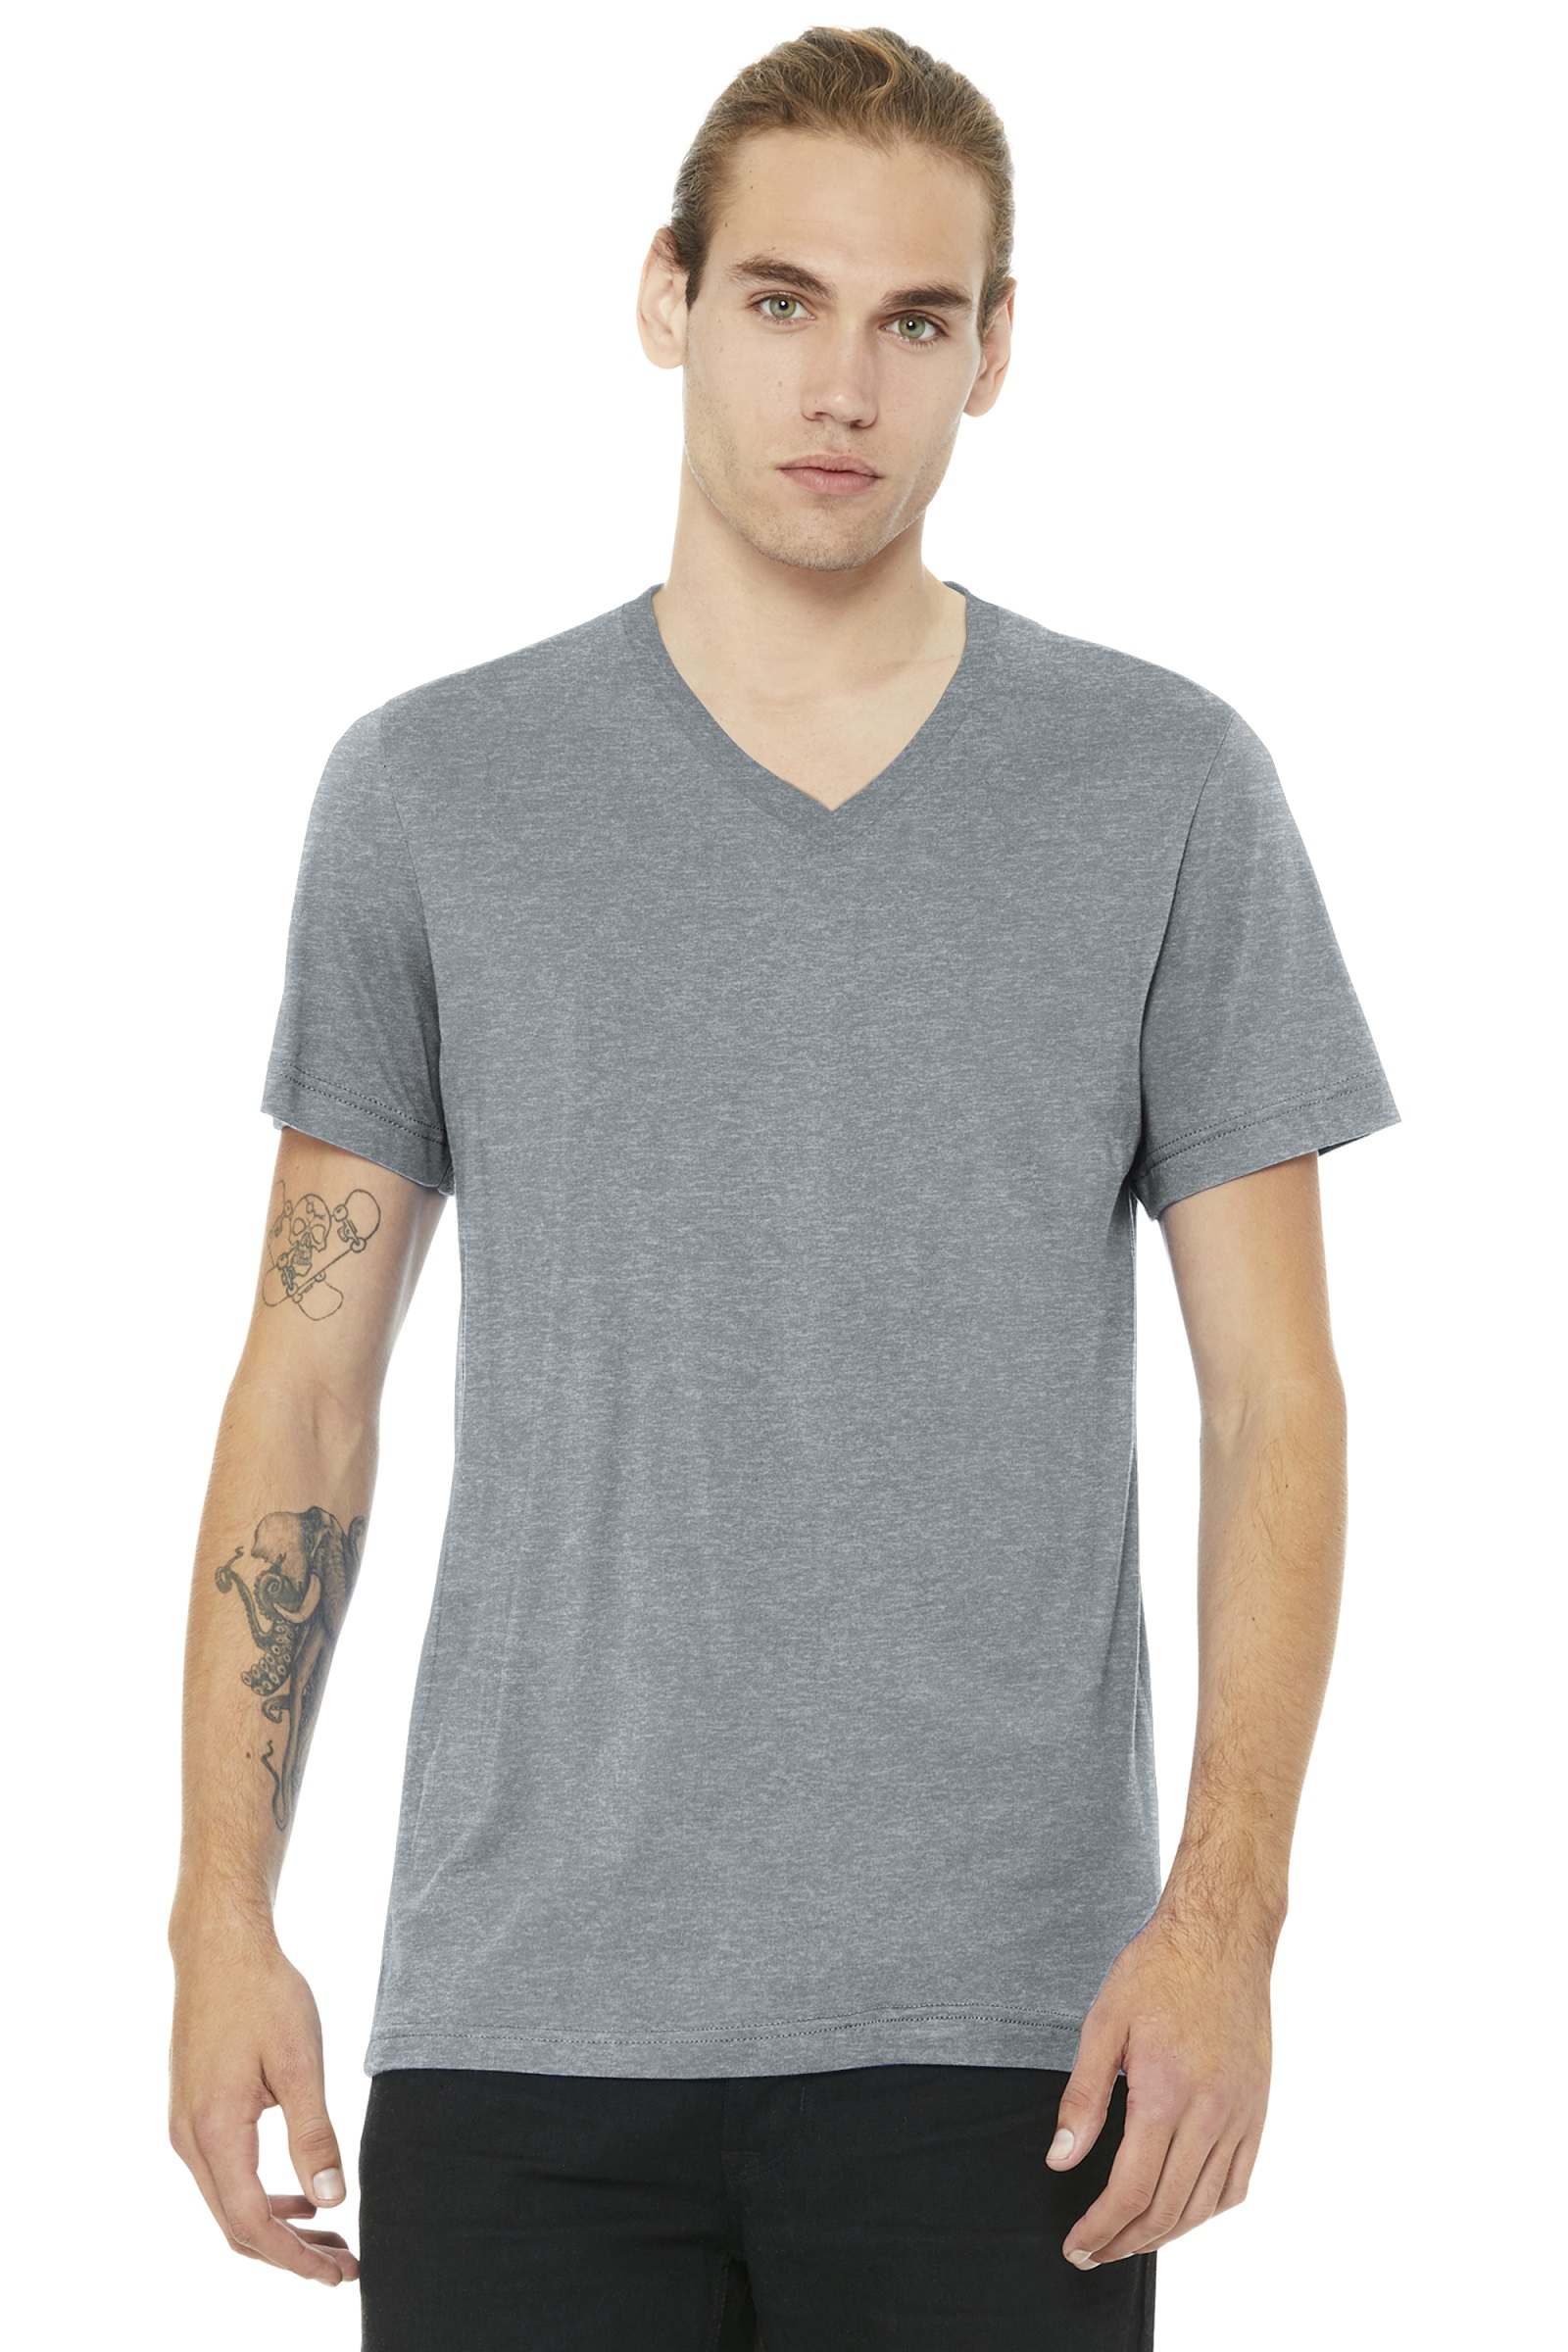 Bella+Canvas Embroidered Men's Jersey Short Sleeve V-Neck Tee